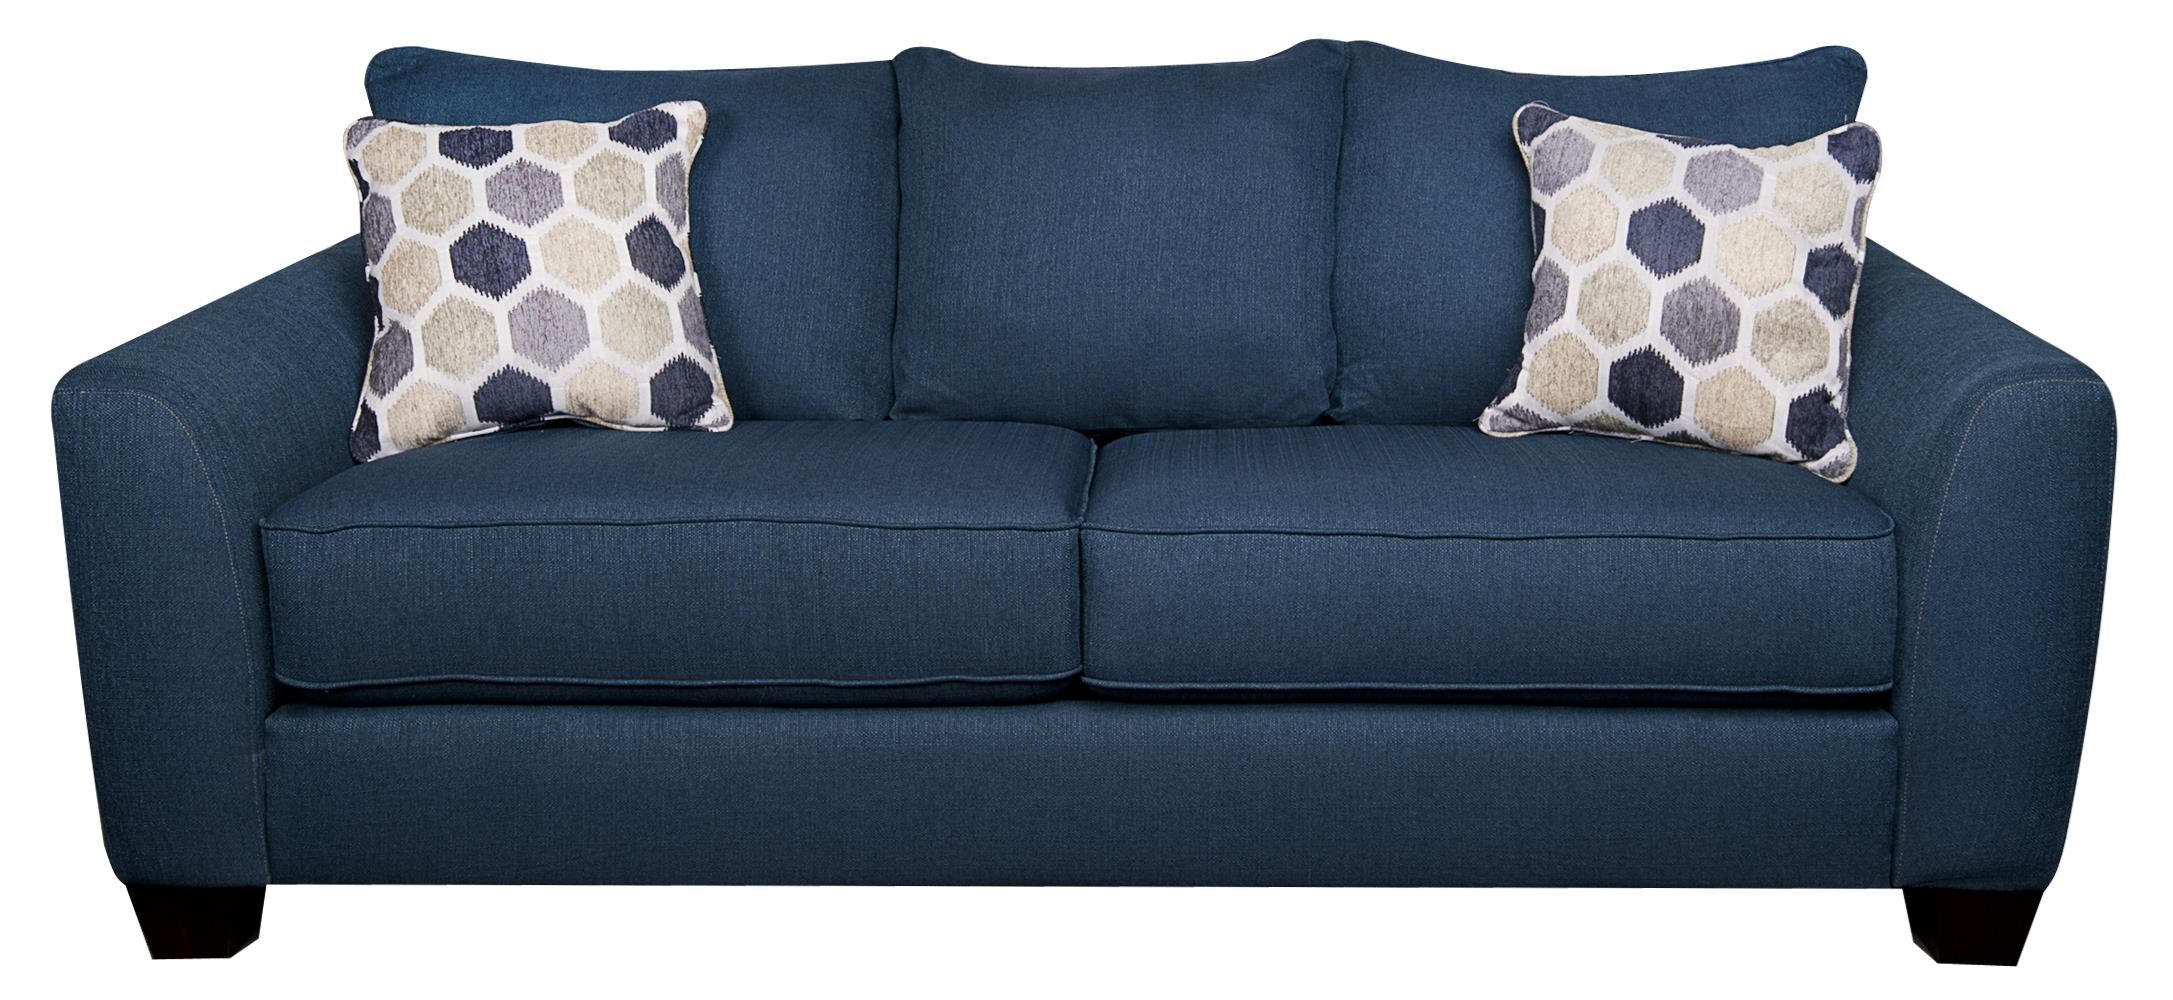 Morris Home Furnishings Remedy Remedy Sofa - Item Number: 540442556